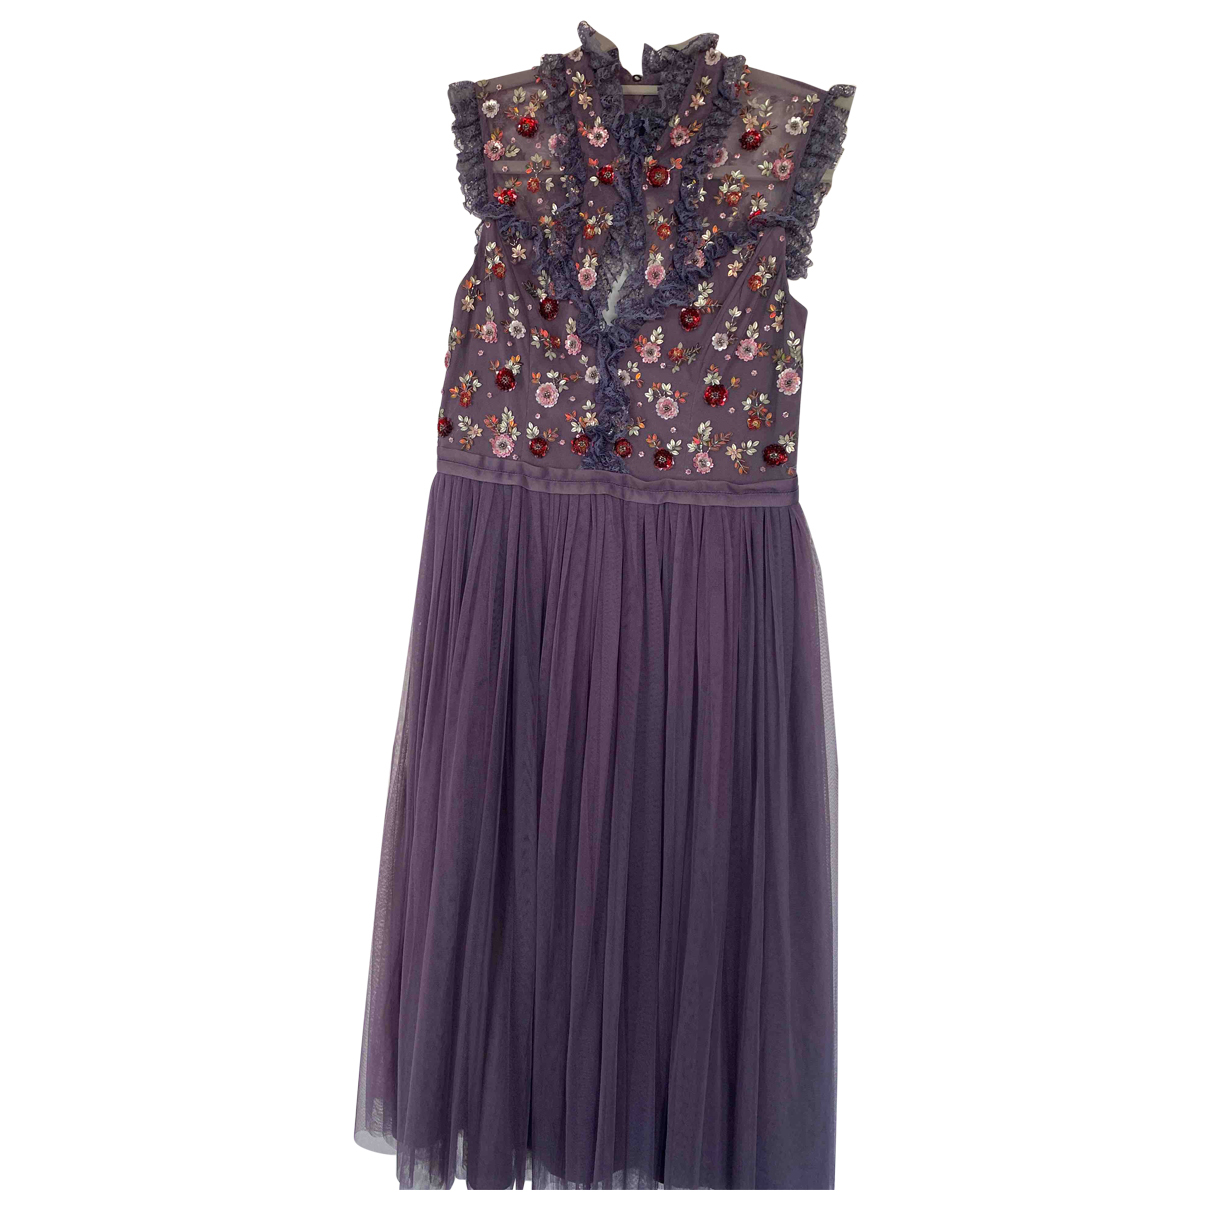 Needle & Thread \N Purple dress for Women 8 UK